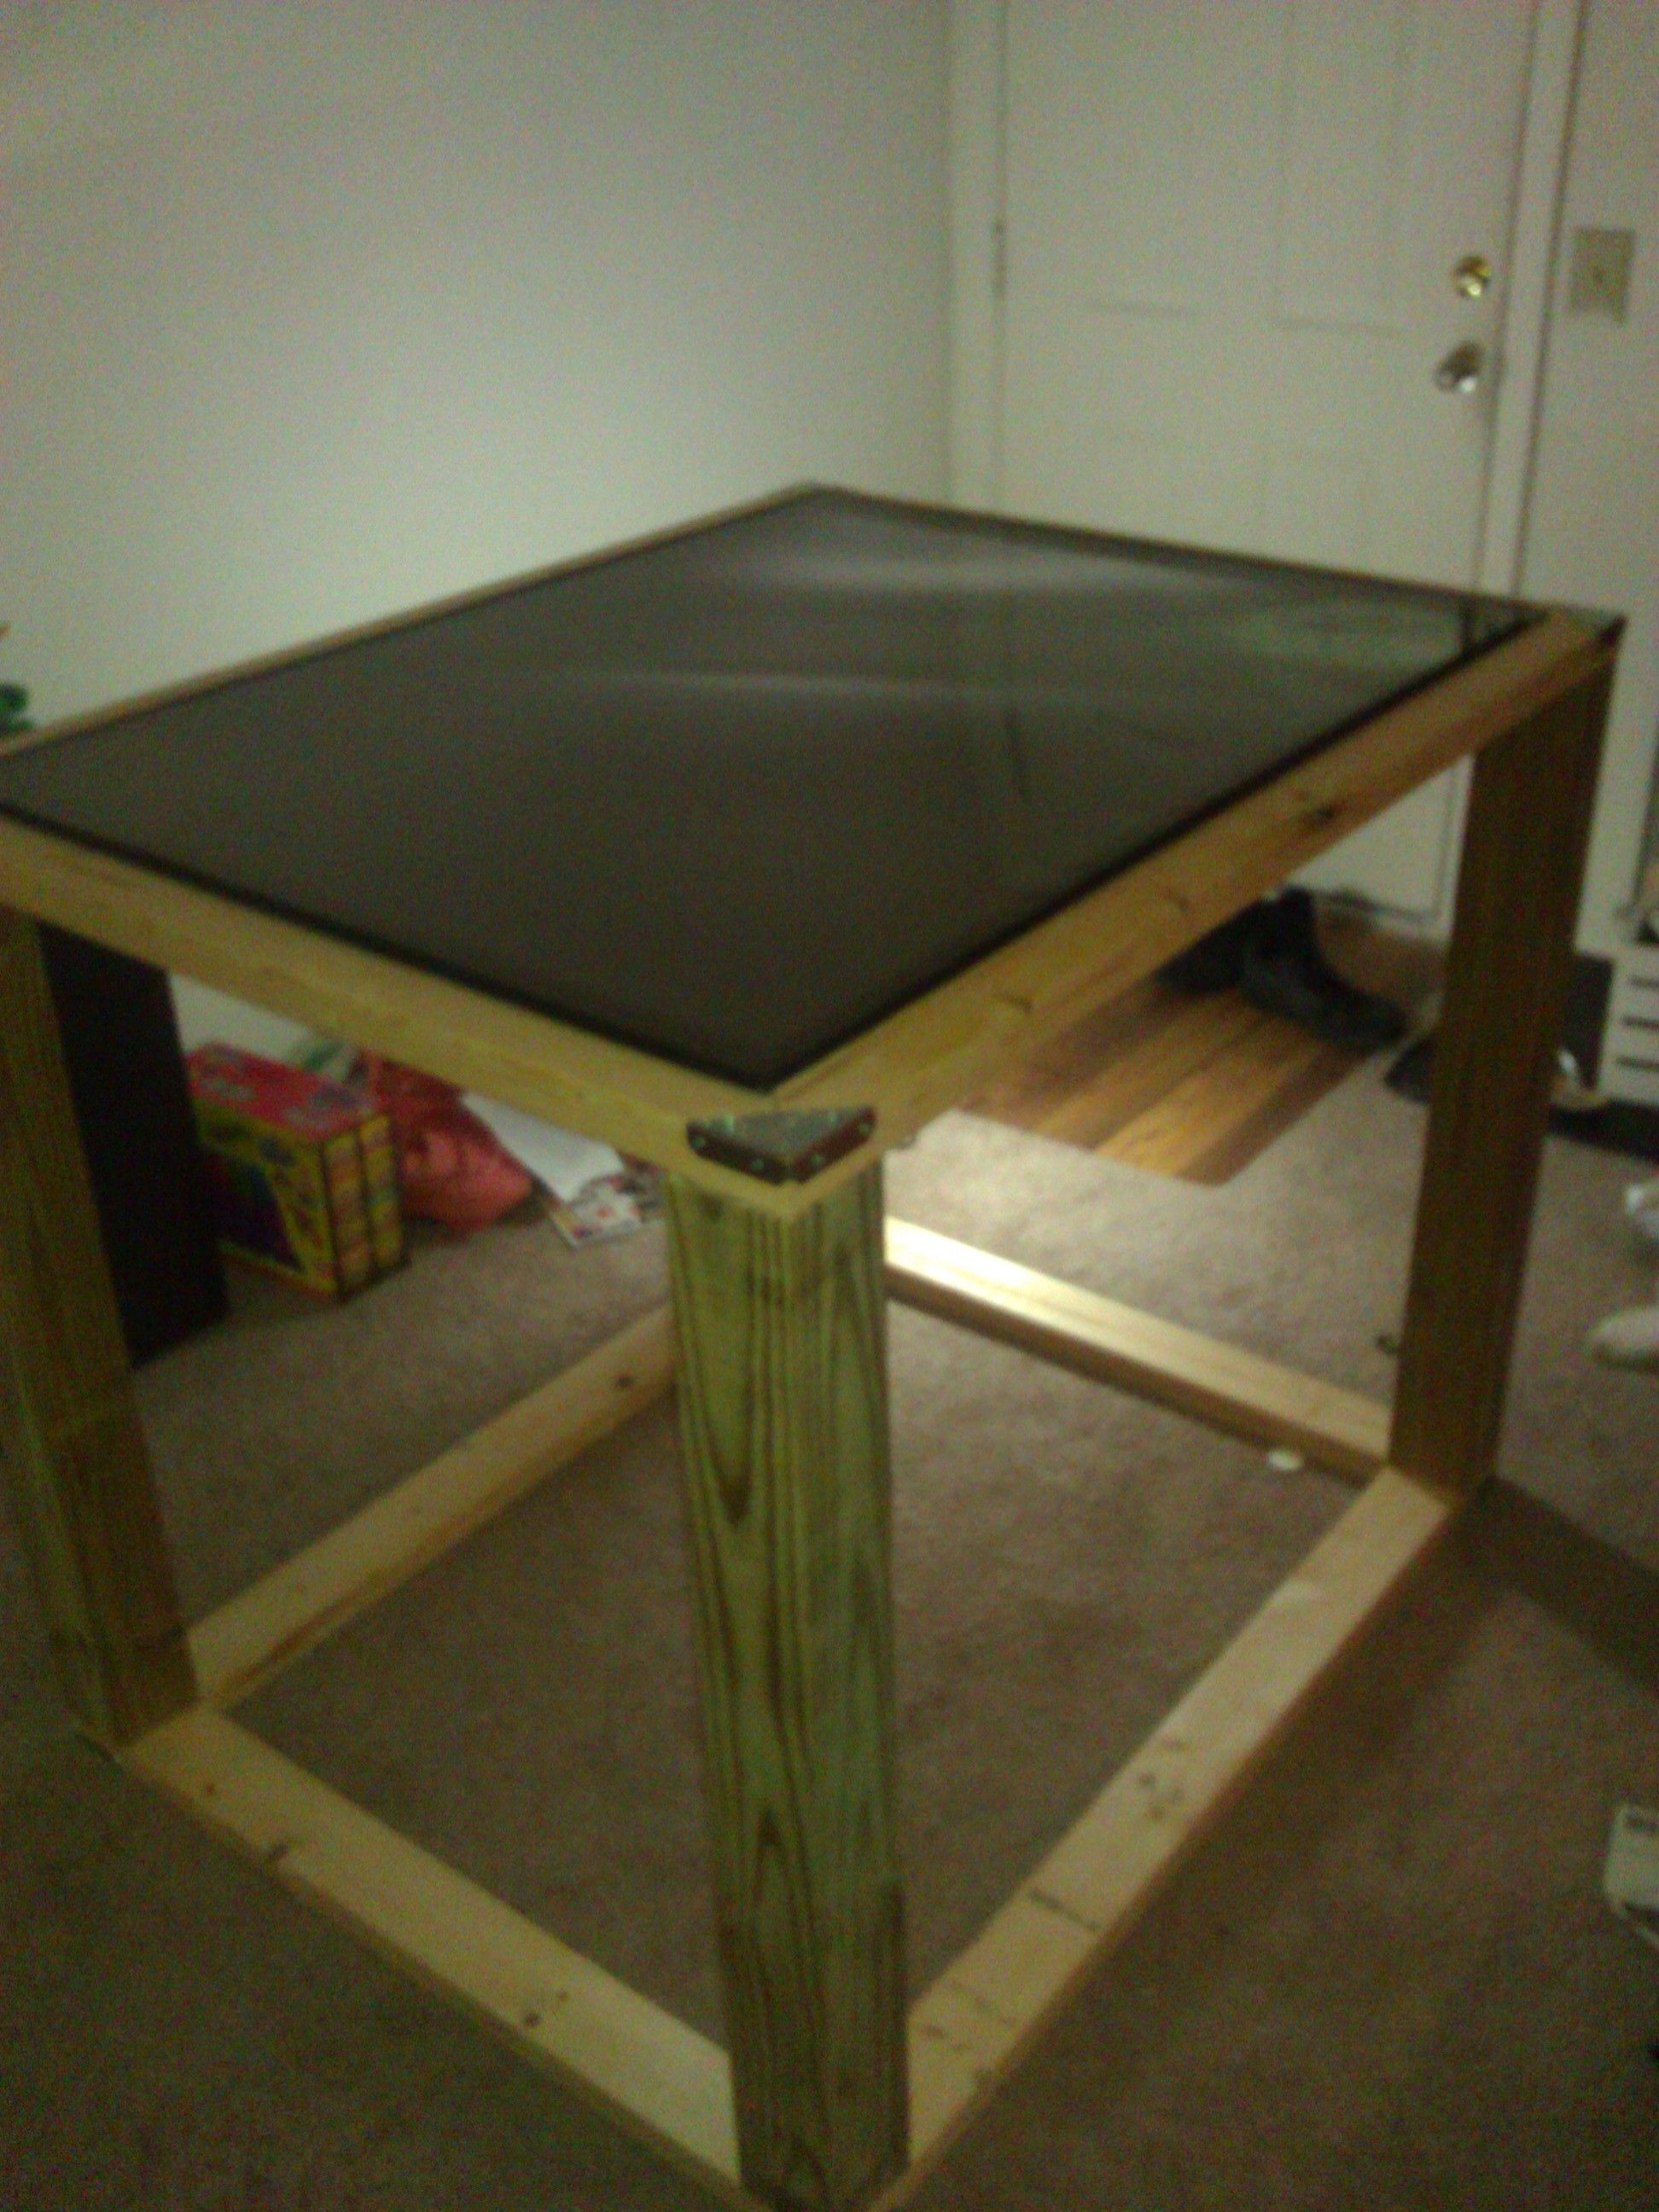 The multi-touch table nearly completed (in terms of physical assembly)